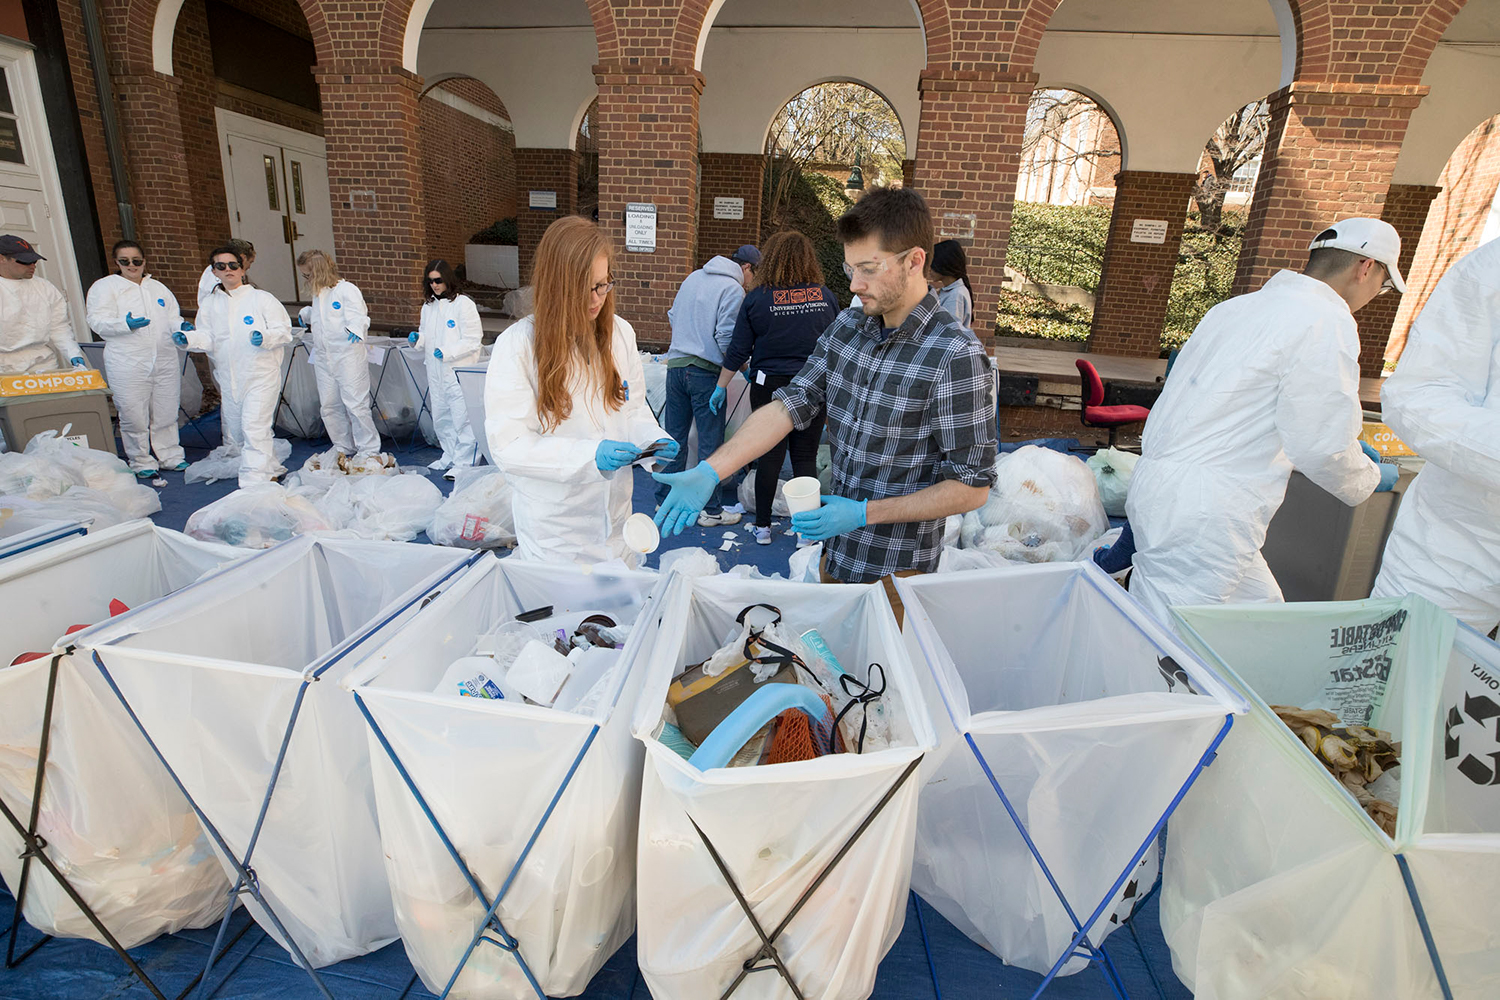 Engineering students go through trash behind Thornton and Olsson halls as part of a waste stream inventory. (Photos by Dan Addison, University Communications)